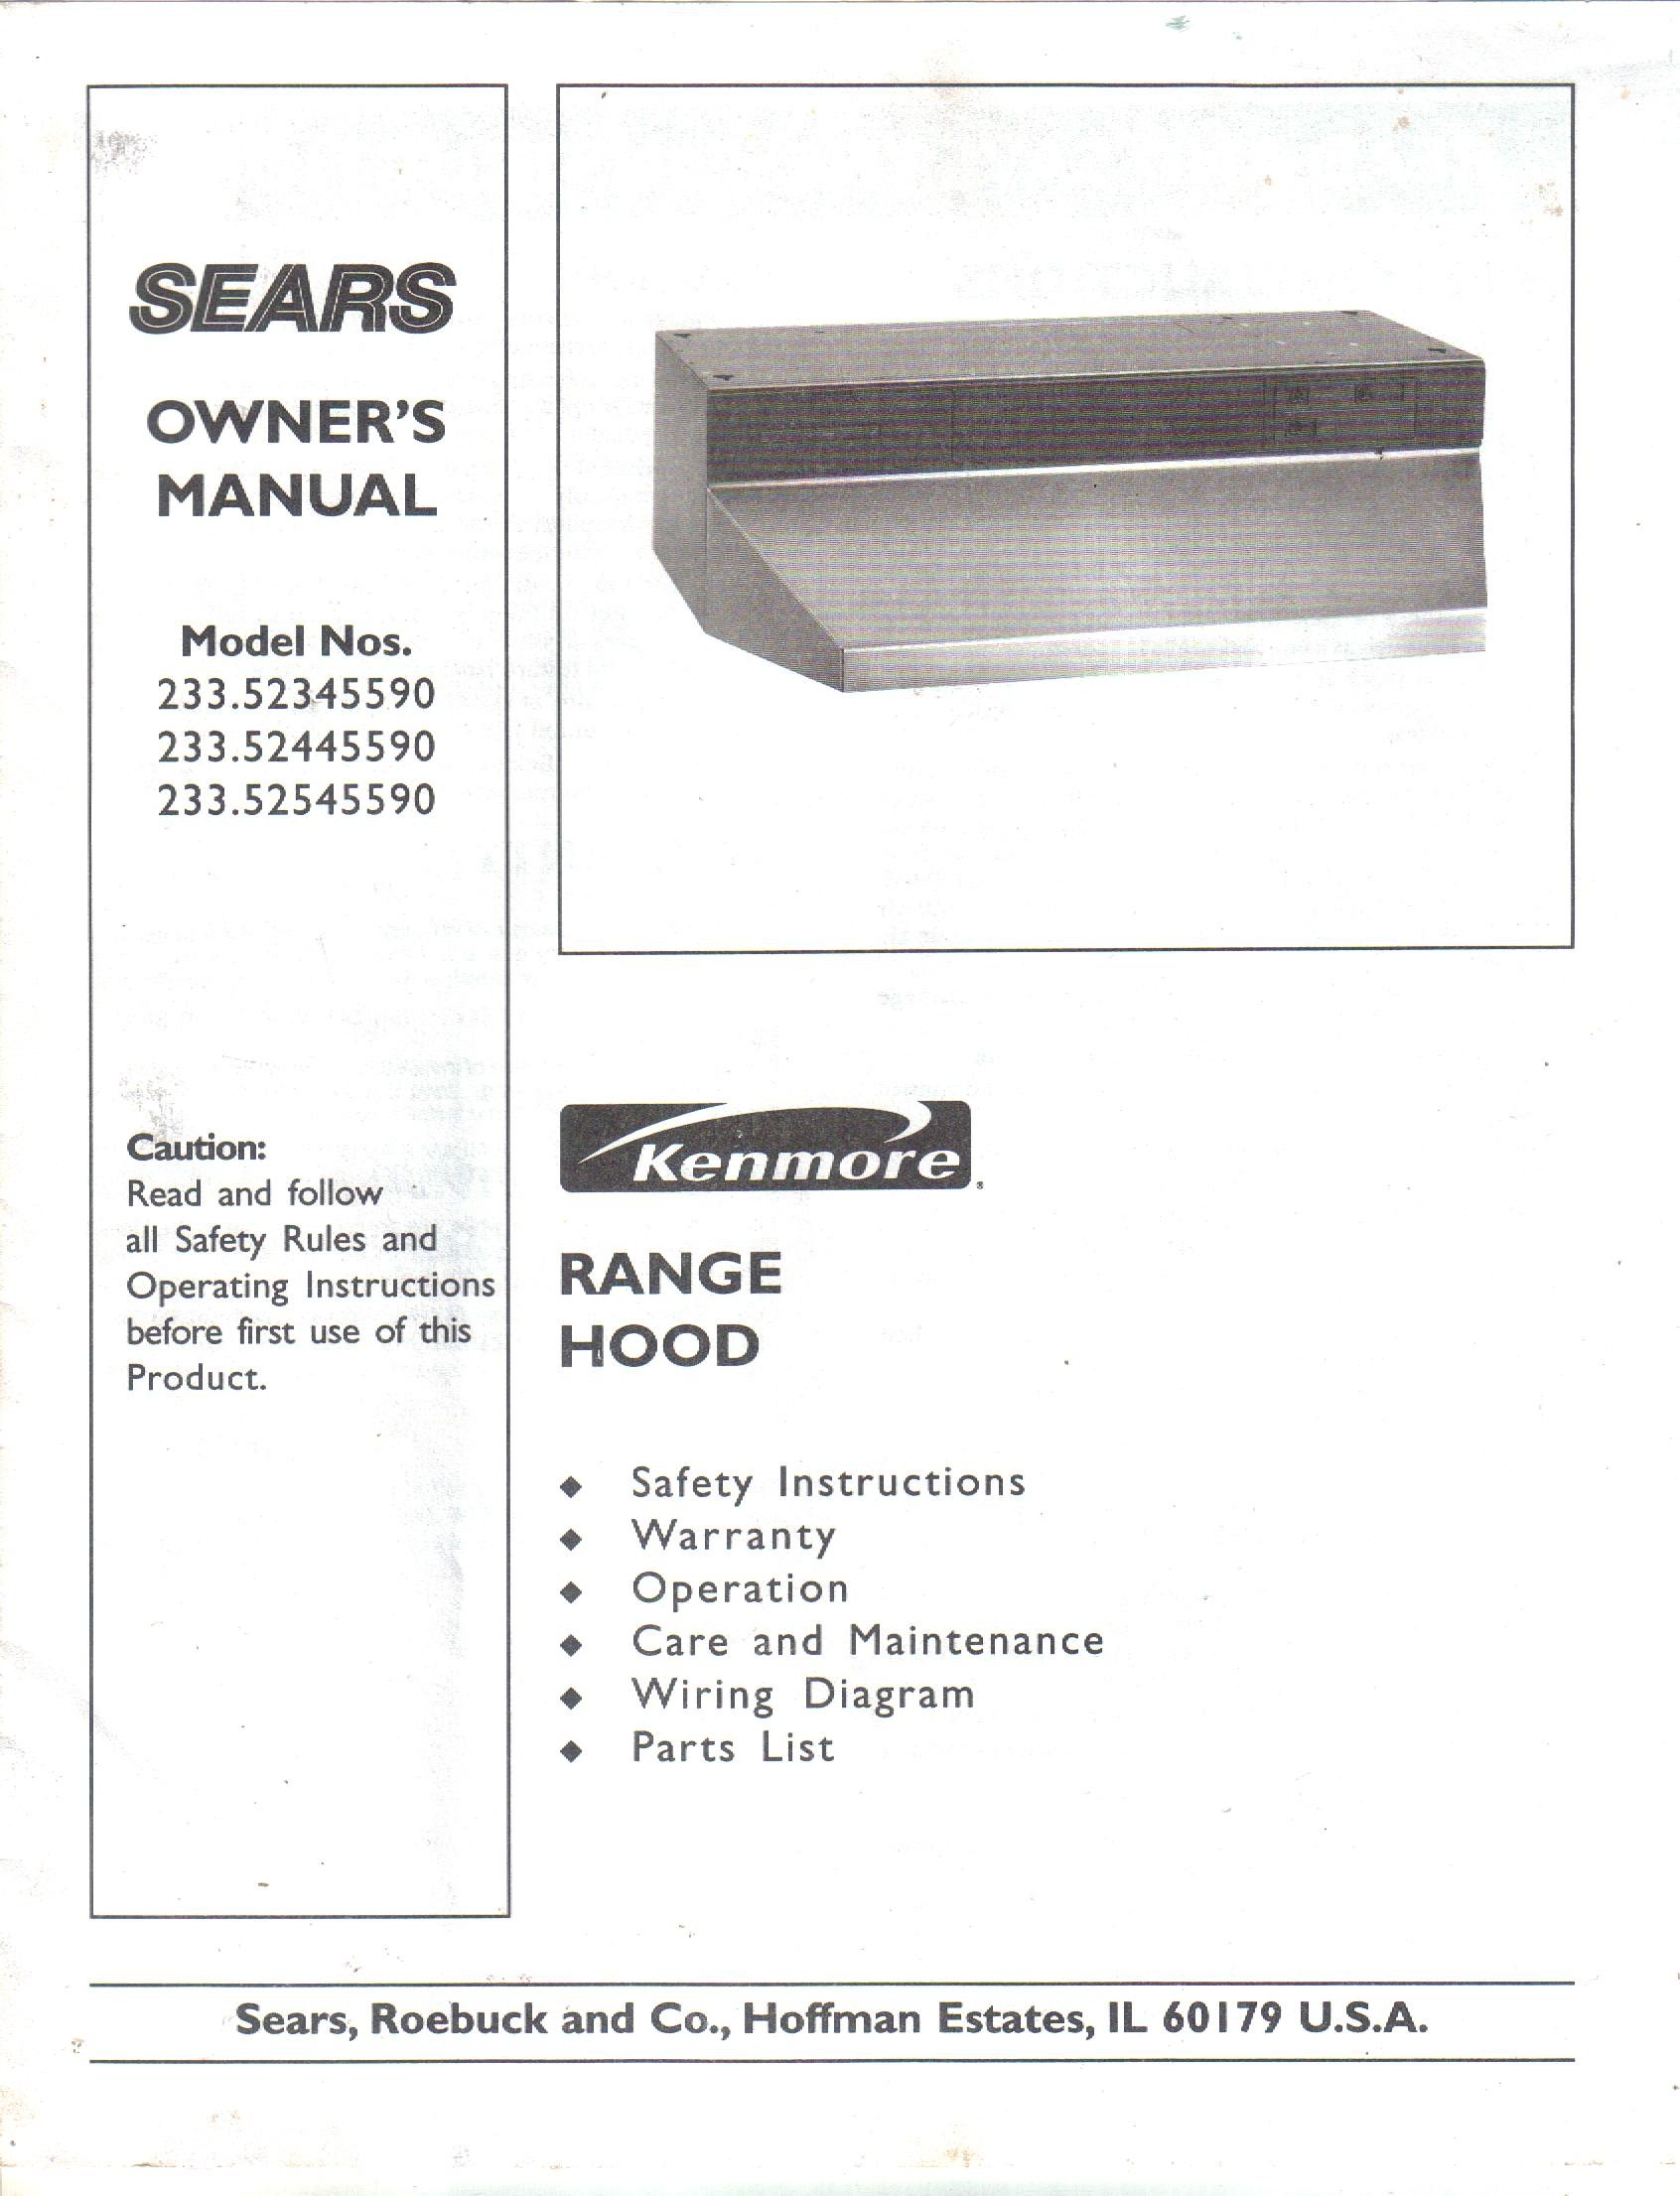 Sears Kenmore Range Hood Owners Manual Use Care Guide Model First Co Wiring Diagrams 23352345590 23352445590 23352545590 Not Stated